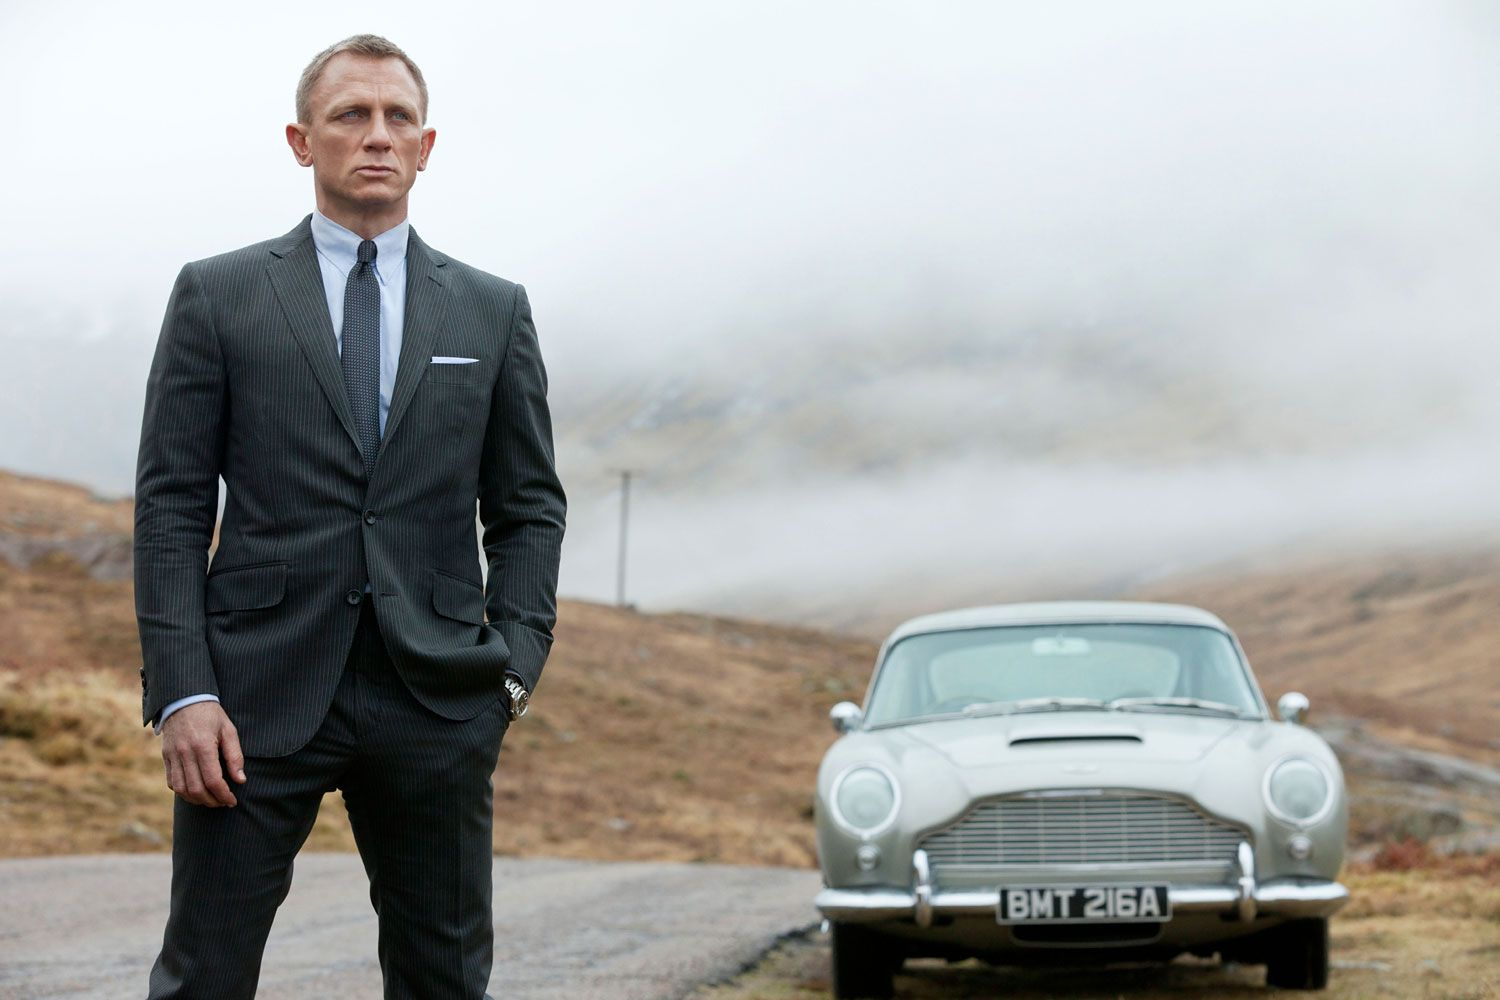 Skyfall (2012) - Aston Martin DB5 - The Driver: Daniel Craig, locked in combat with an evil ponytail also suffering from an Oepipus complex.The Car: The drive from London to Bond's childhood home through the Scottish highlands is our favorite scene in any Bond film, full stop. Nothing goes better with dreary UK B-roads than a silver DB5 carrying Dame Judi Dench.The Evolutionary Leap: Somehow, Sam Mendes imbued Skyfall with the same nuance and devastation he brought to Revolutionary Road. Nostalgics might whimper, but with the best treatment of the best car and the second-best Bond, this is the finest of the franchise.